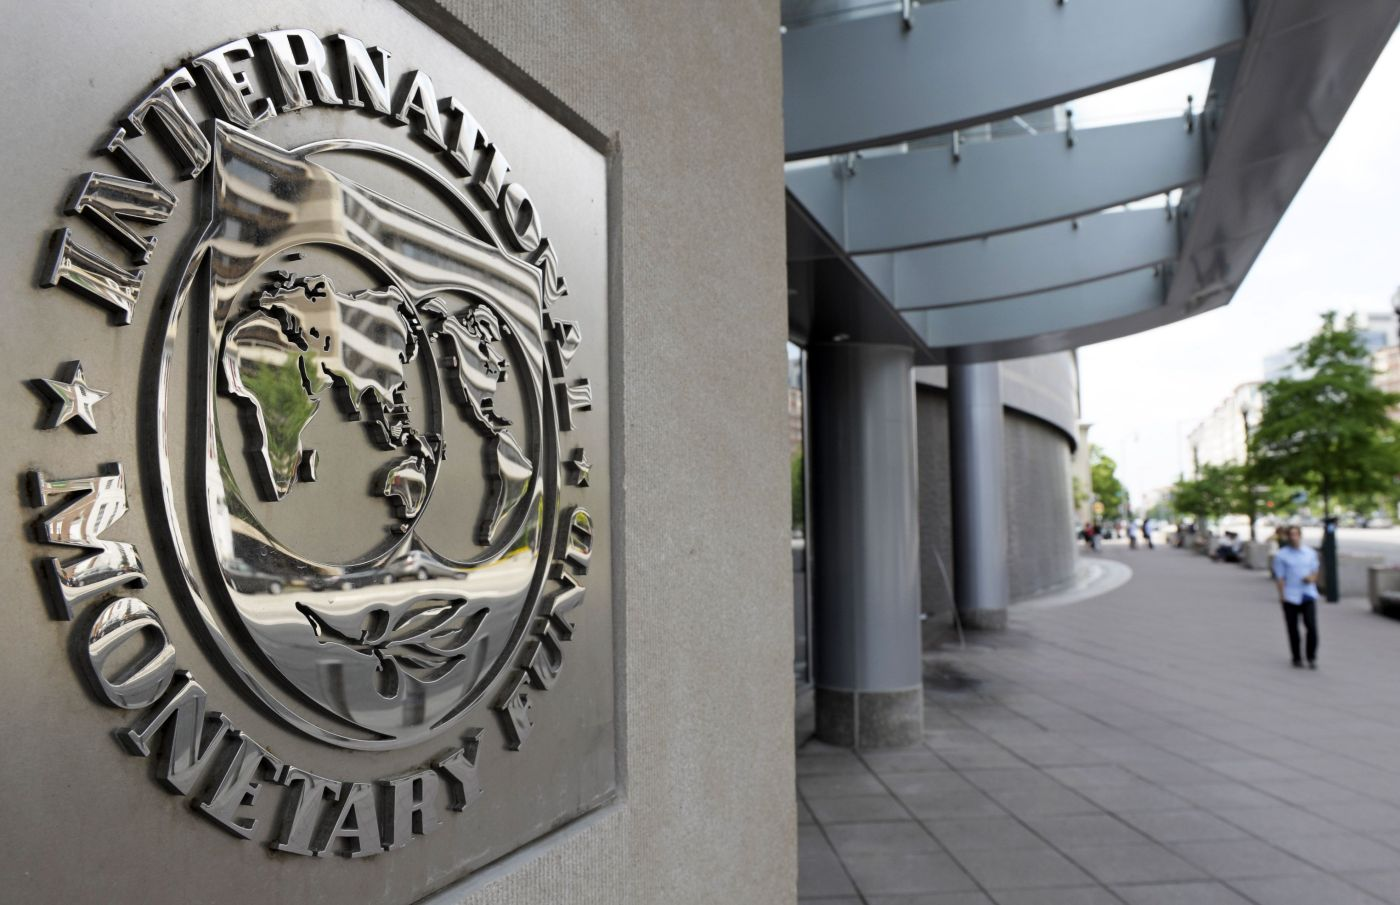 World Economies Warn Of Global Risks, Call For Bold Action